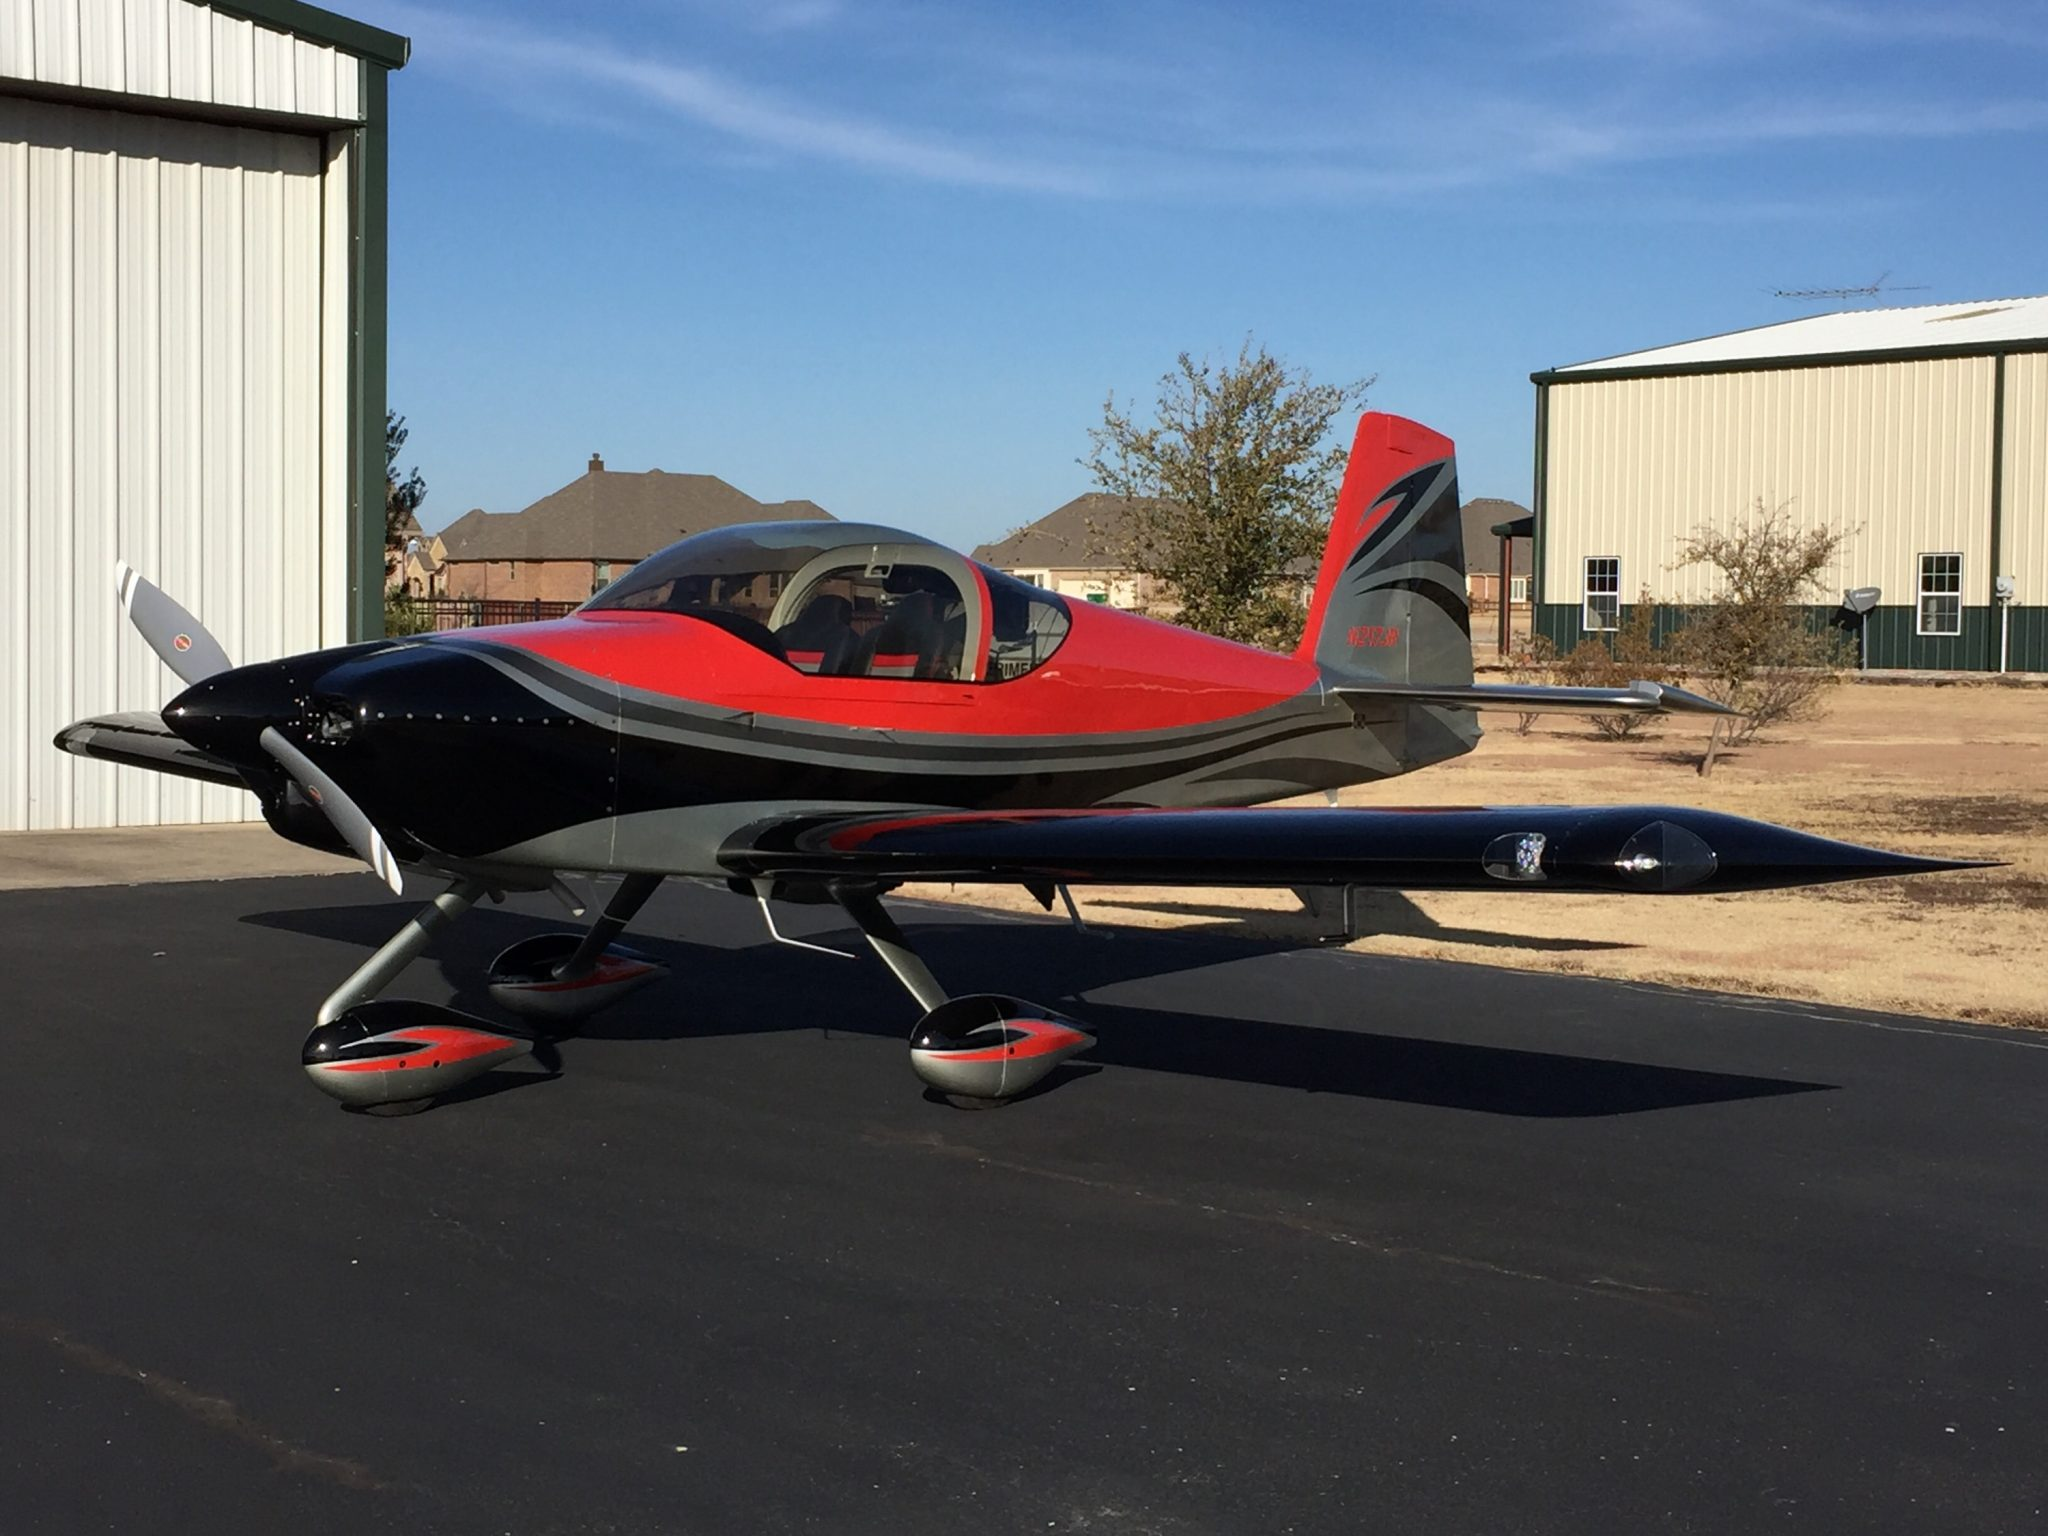 RV-14 featuring our RV-14 Airflow-Systems Air Conditioning System